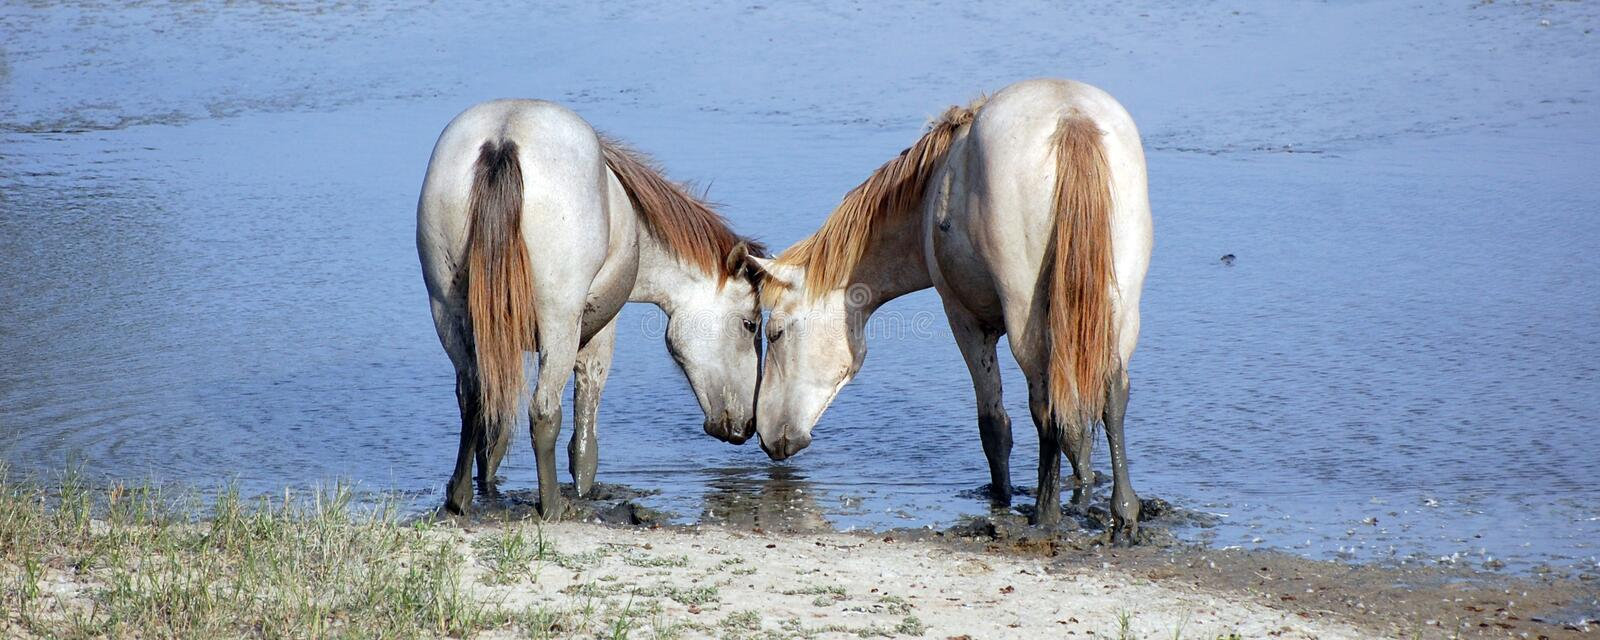 Horses in love royalty free stock photos